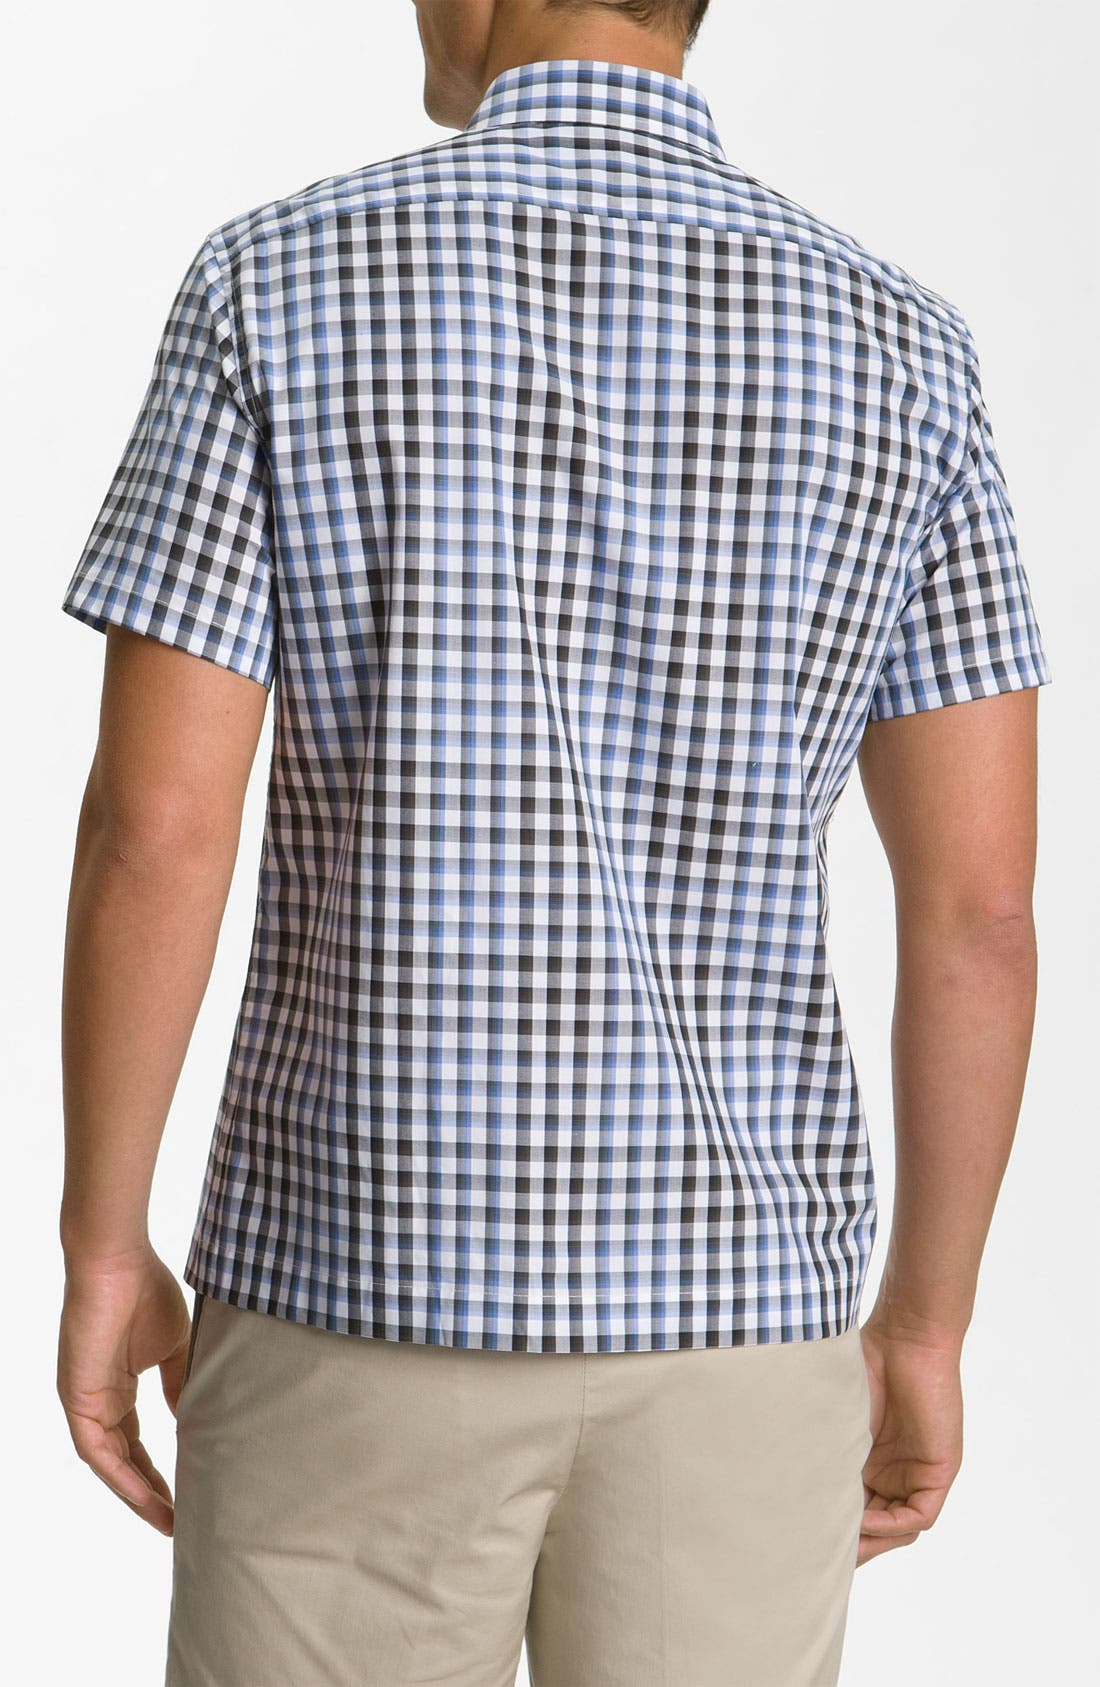 Alternate Image 2  - Michael Kors 'Nils' Check Plaid Woven Shirt